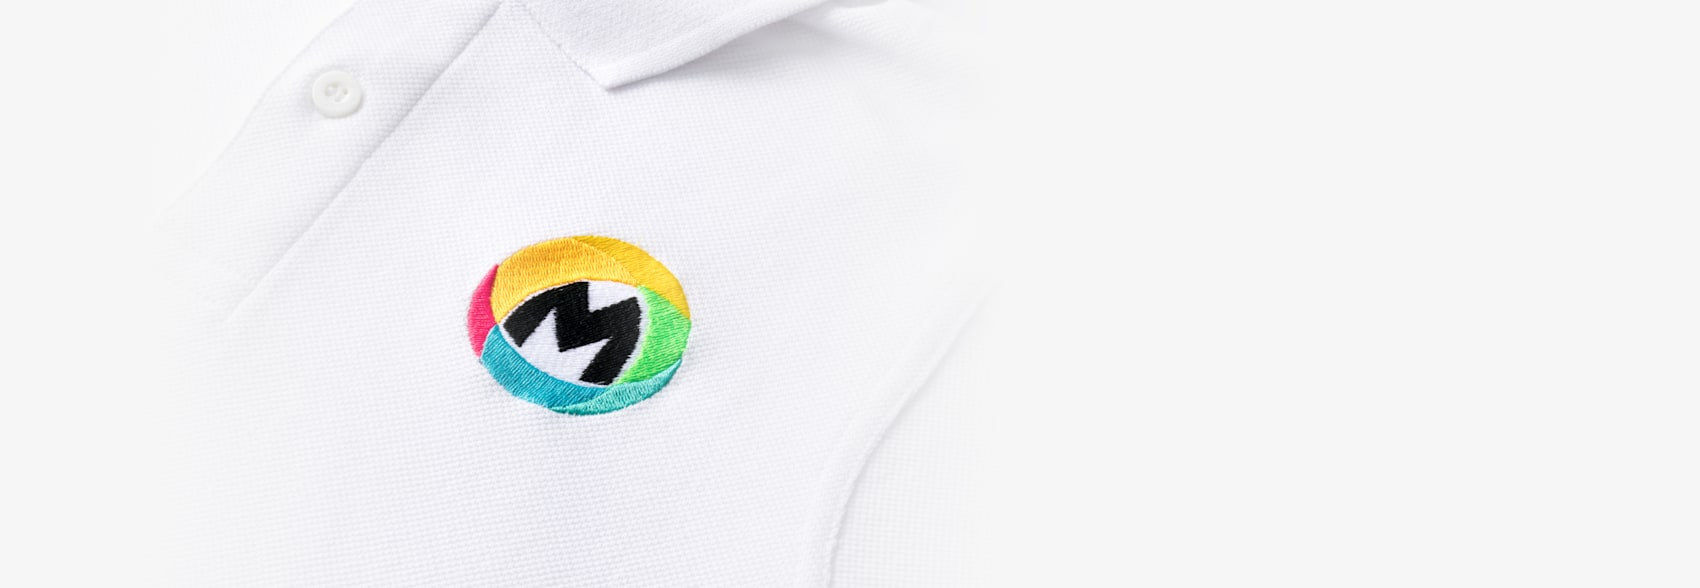 Personalised Polo Shirt with logo